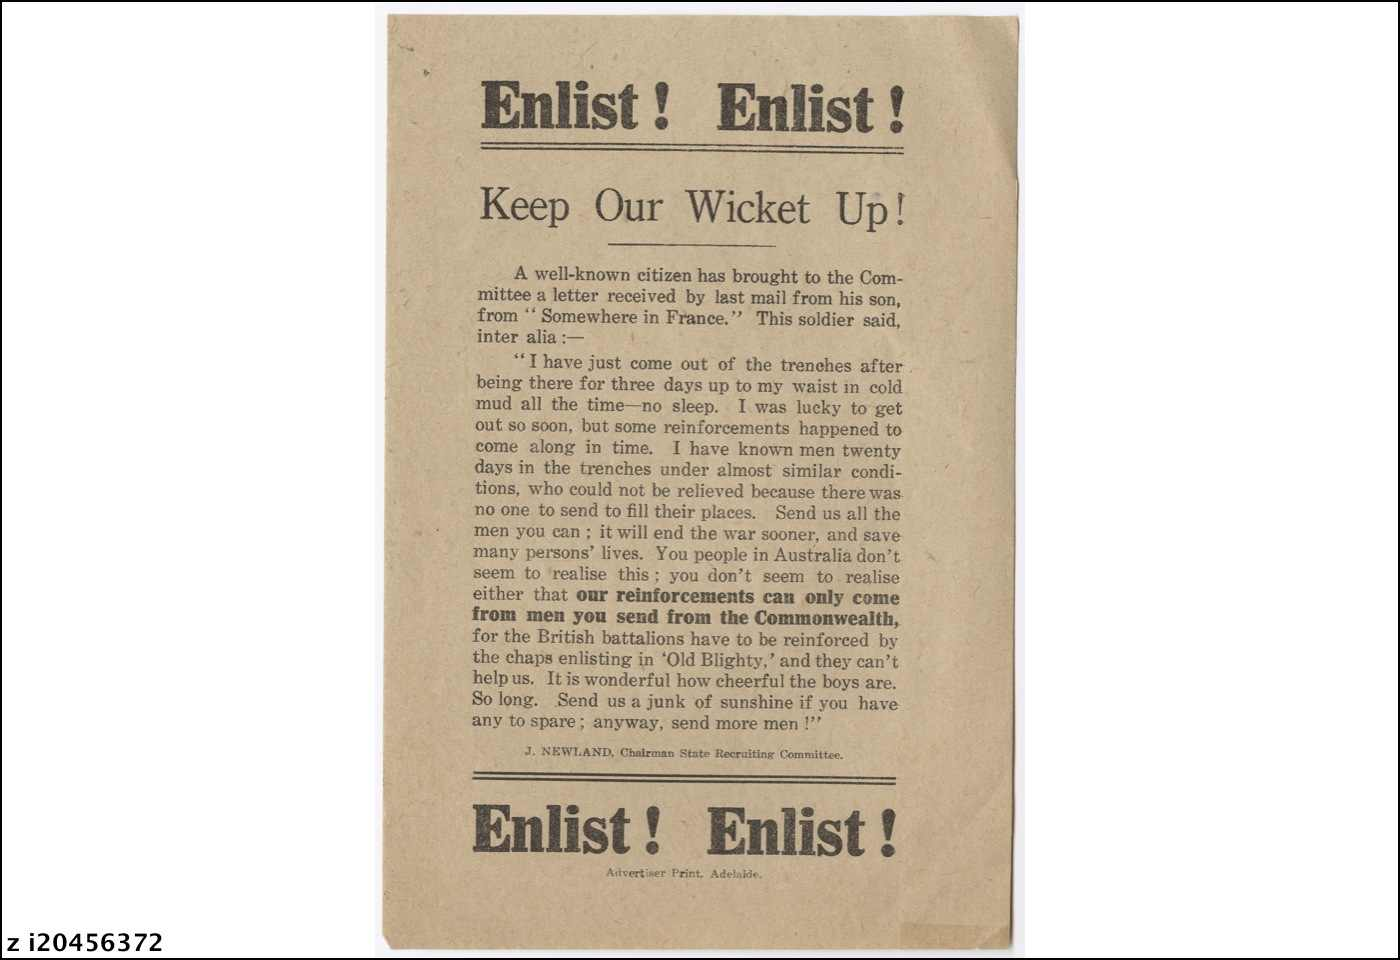 Enlist! Enlist! : keep our wicket up!